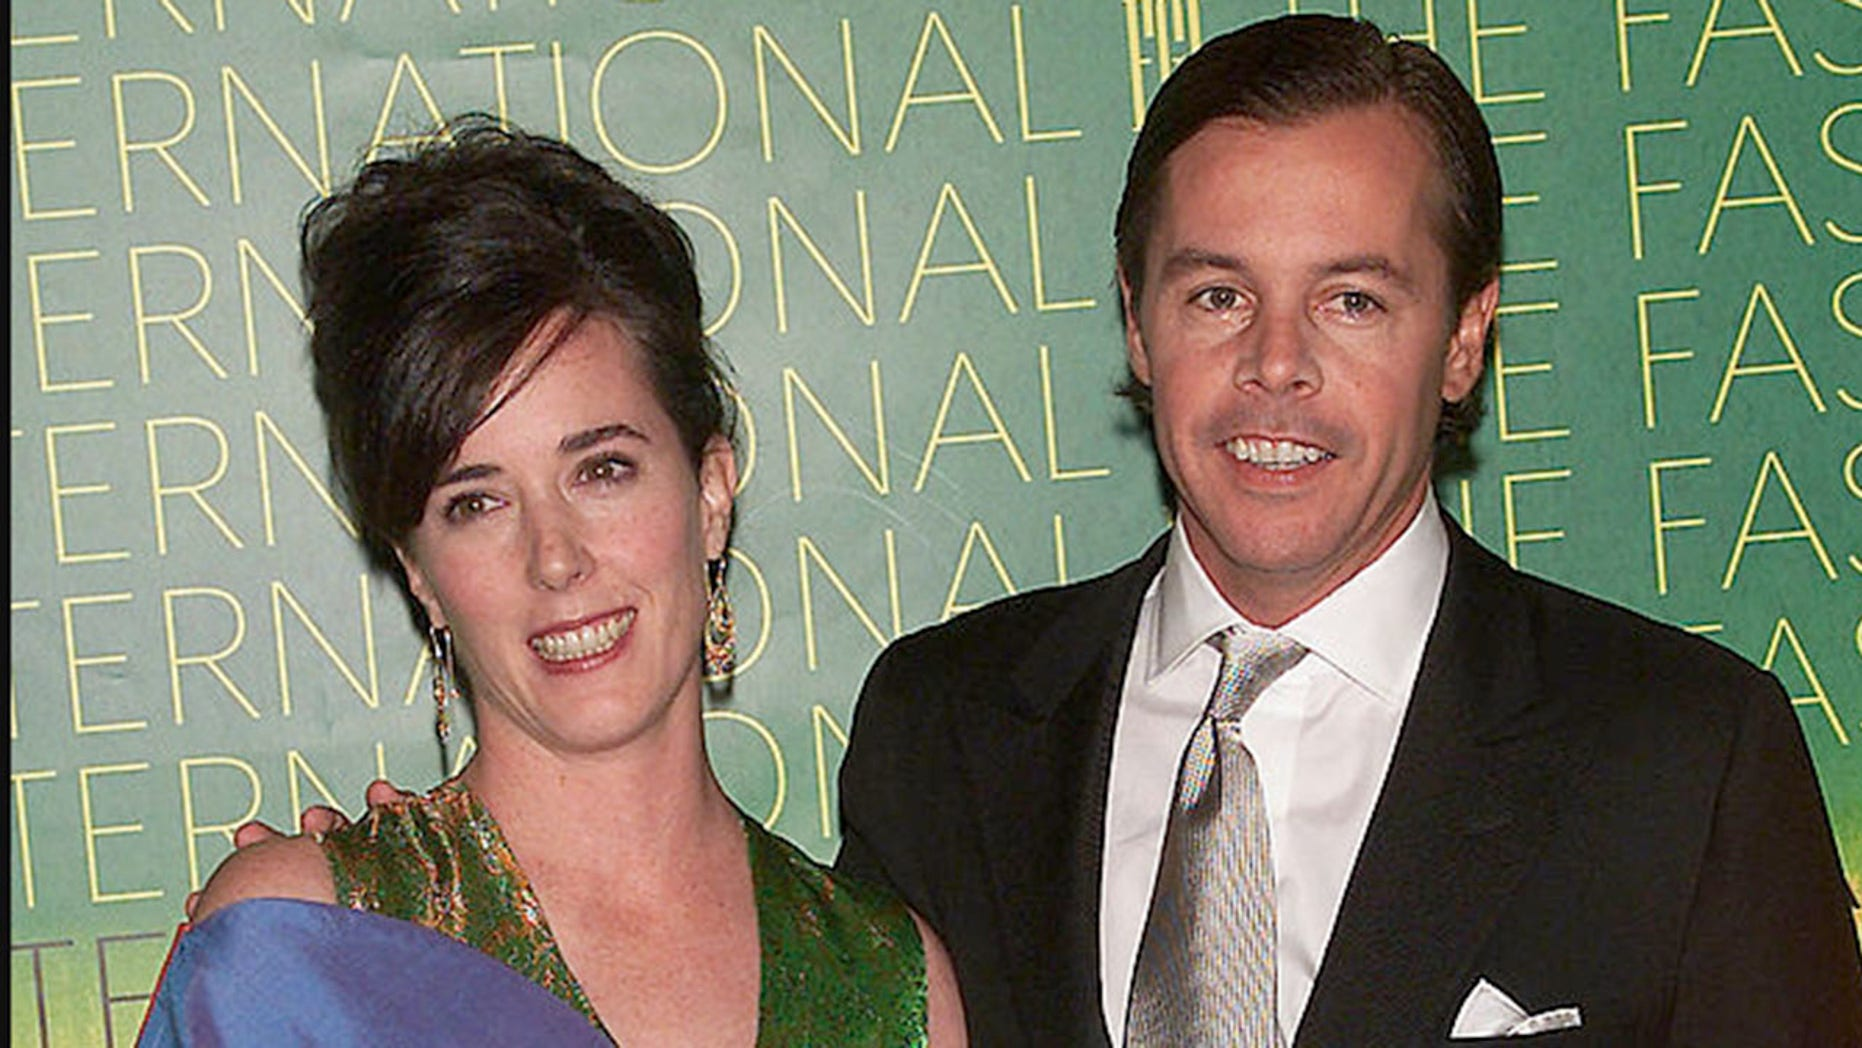 Kate Spade, left, hanged herself in her Park Avenue home on Tuesday morning. According to reports, the famed fashion designer fell into a deep depression after her husband Andy, right, moved out of their home and sought a divorce.